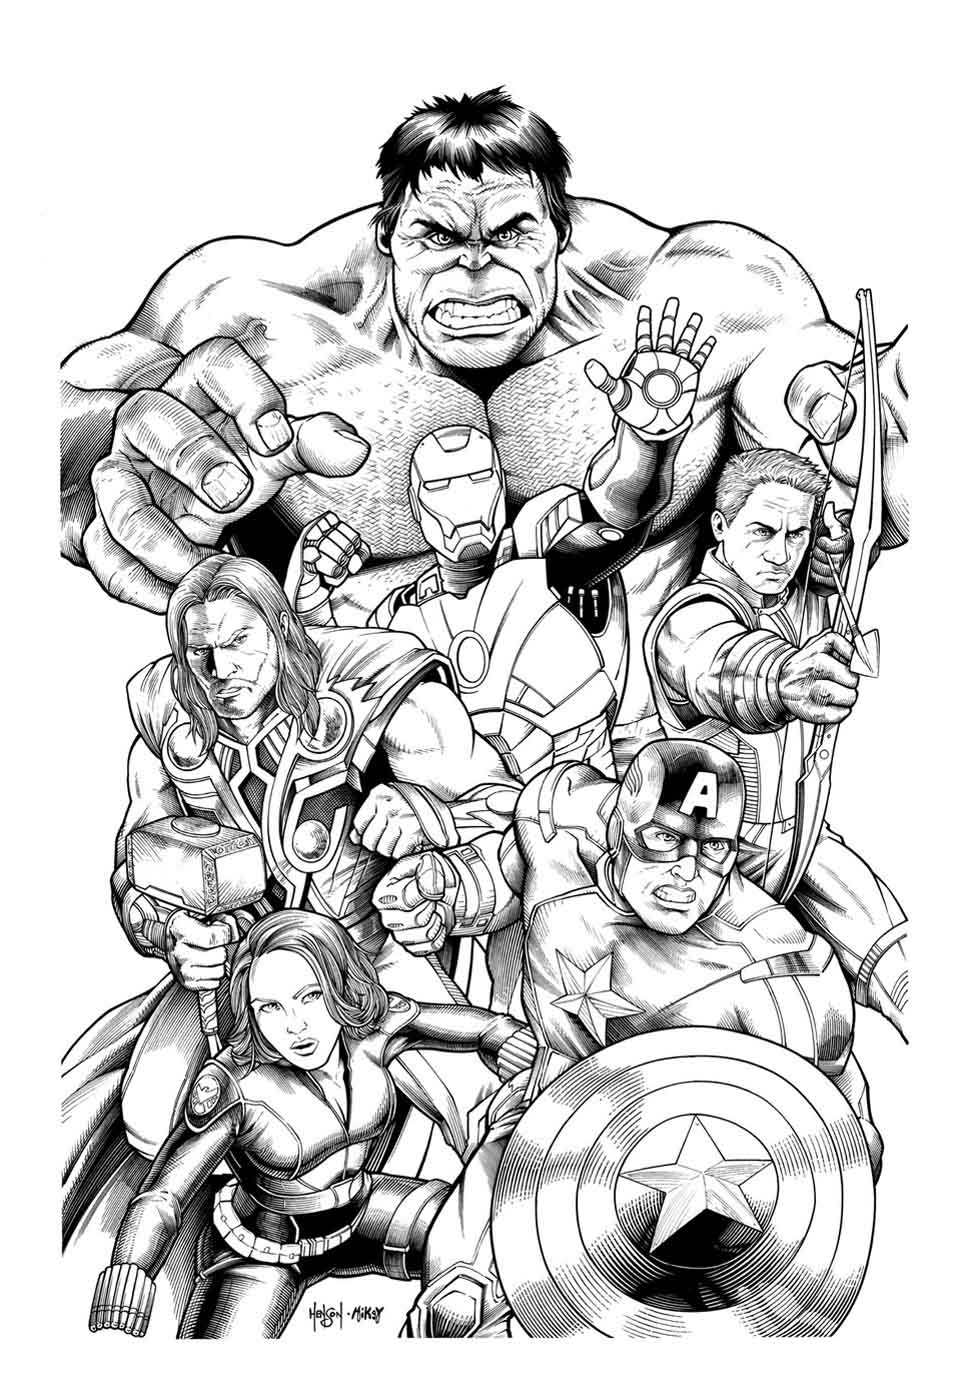 The powerful Hulk and the other heroes